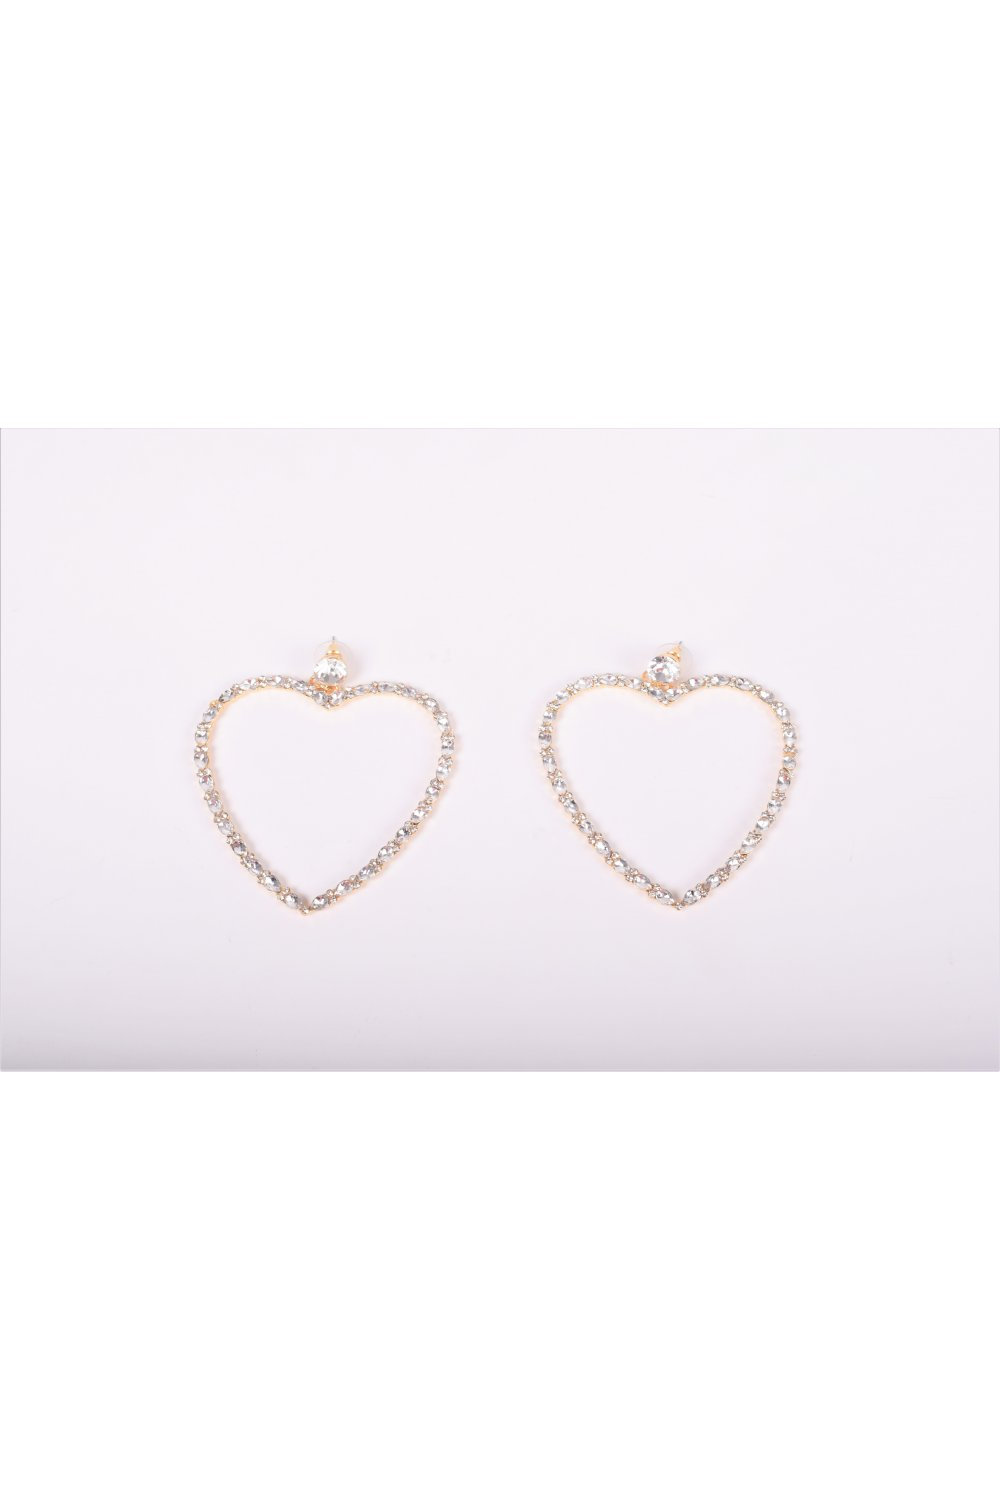 HEART EARRINGS WITH STRASS